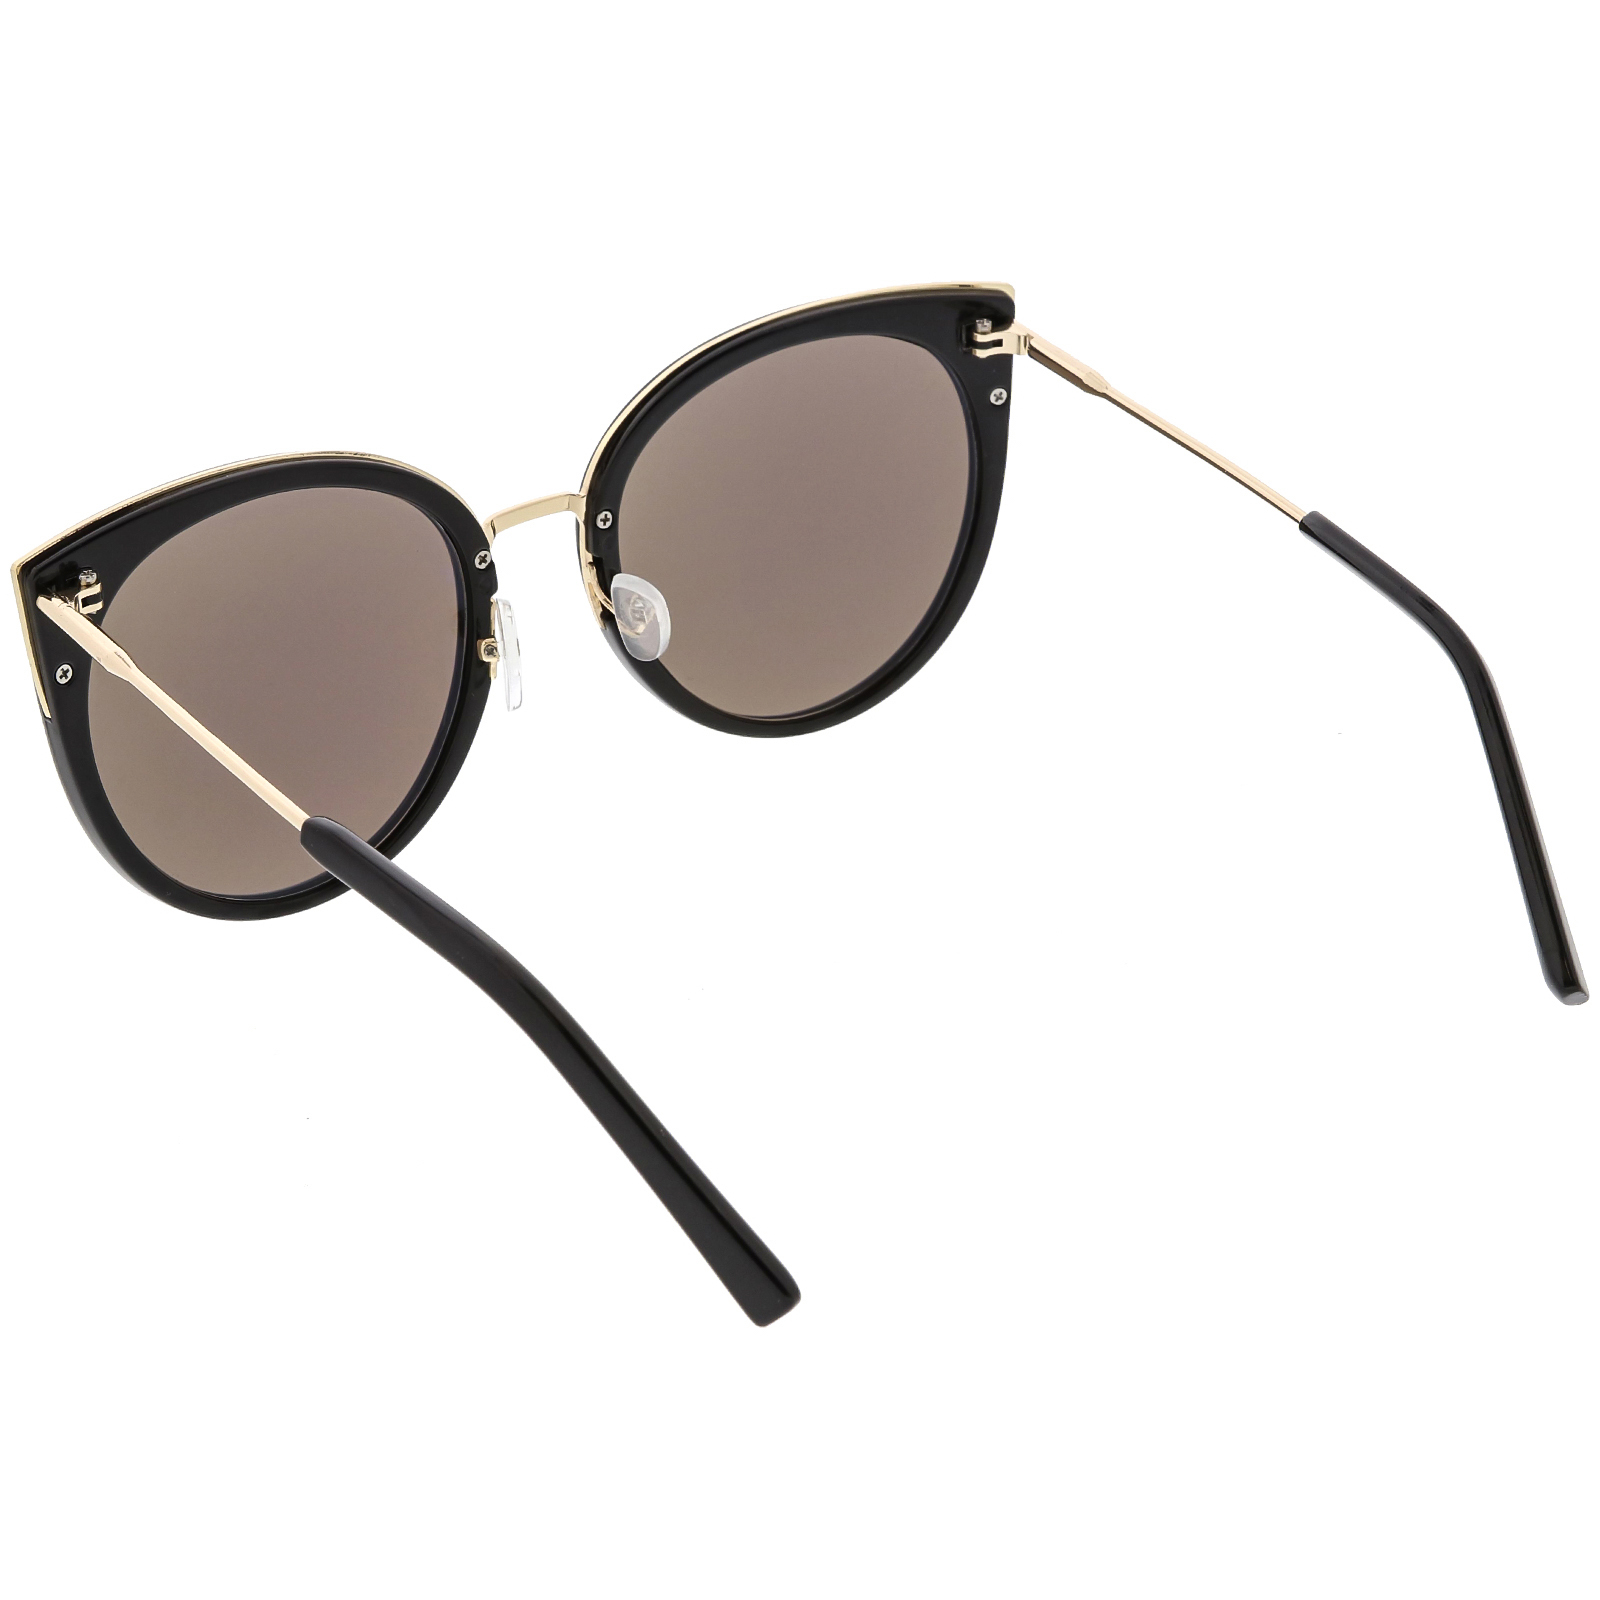 c6a9c0190a83a sunglassLA - Women s Oversize Cat Eye Sunglasses Round Colored Mirror Lens  55mm (Creme   Gold Mirror) - Walmart.com